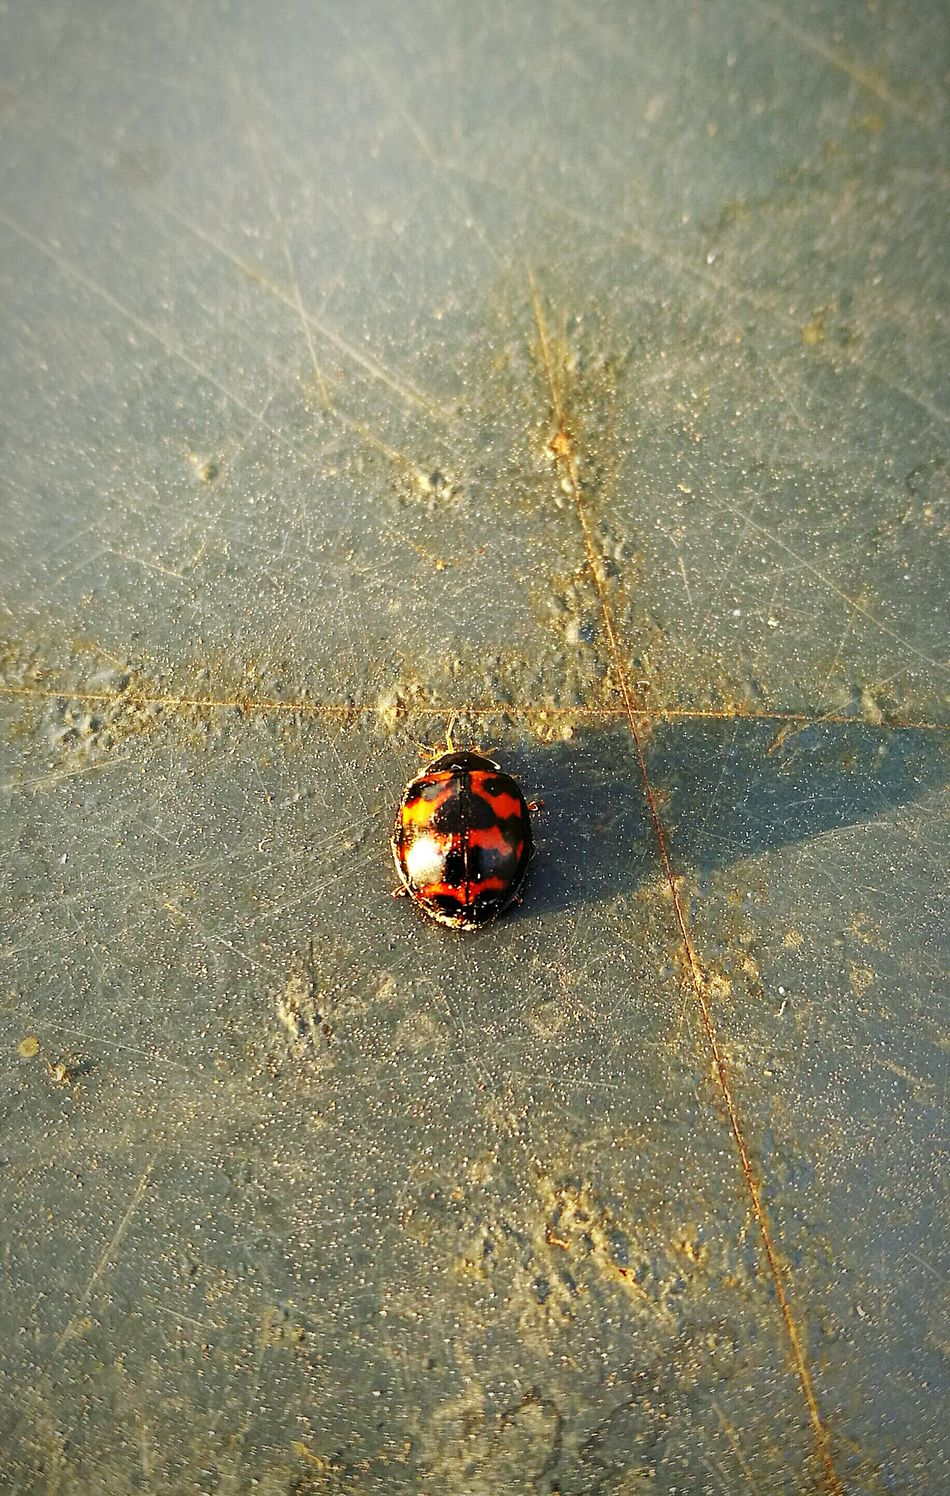 No People Close-up Animal Themes Nature Insect Insect Photography Ladybug🐞 Ladybug Ladybeetle Nature Insects  Insect Photo Ladybugs Huawei P9 Leica Huaweiphotography HuaweiP9Photography HuaweiP9